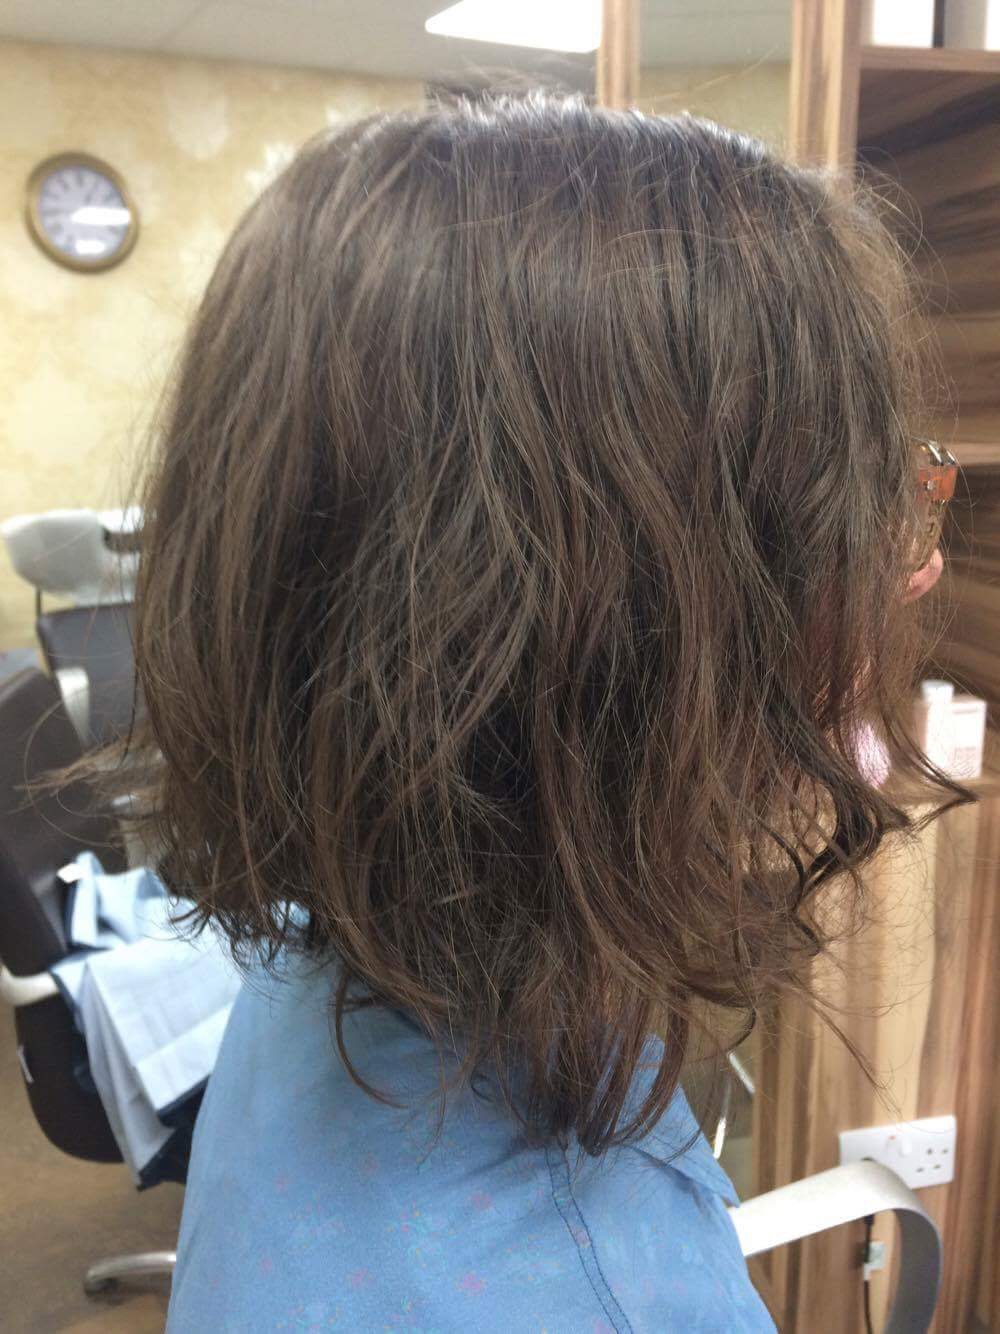 After - Client wanted a textured casual concave bob